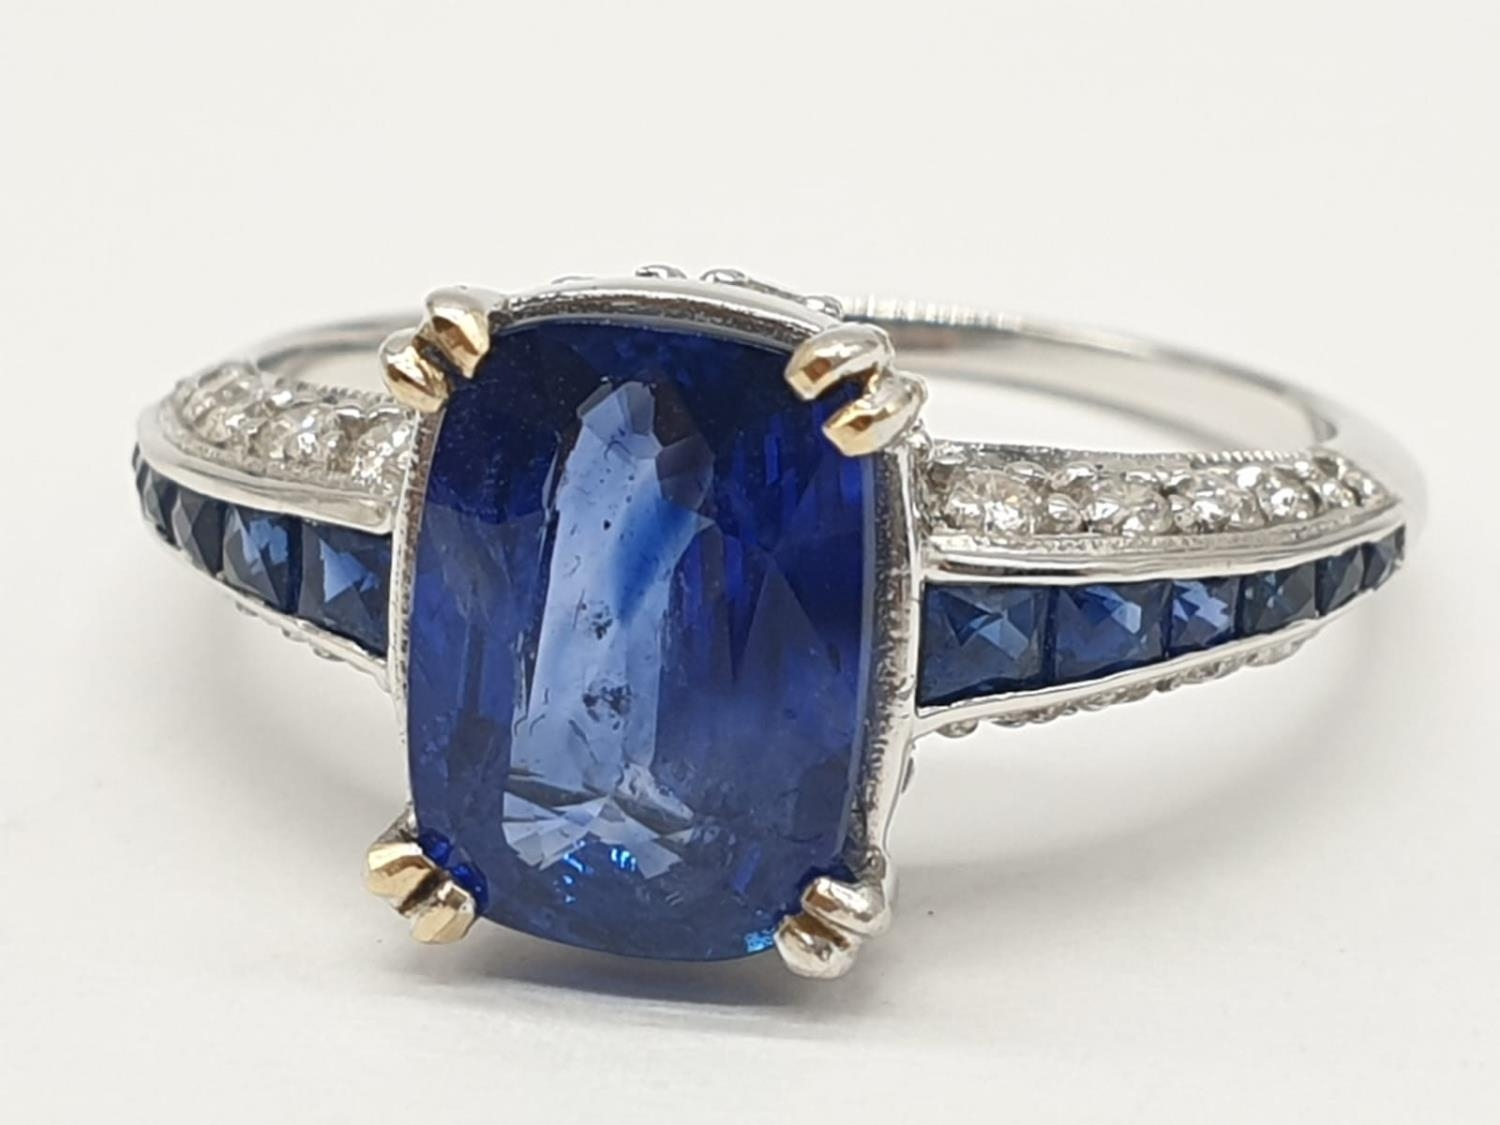 18ct White gold ring with sapphire and diamonds. Weighs 3.2g and is a size N. - Image 2 of 6